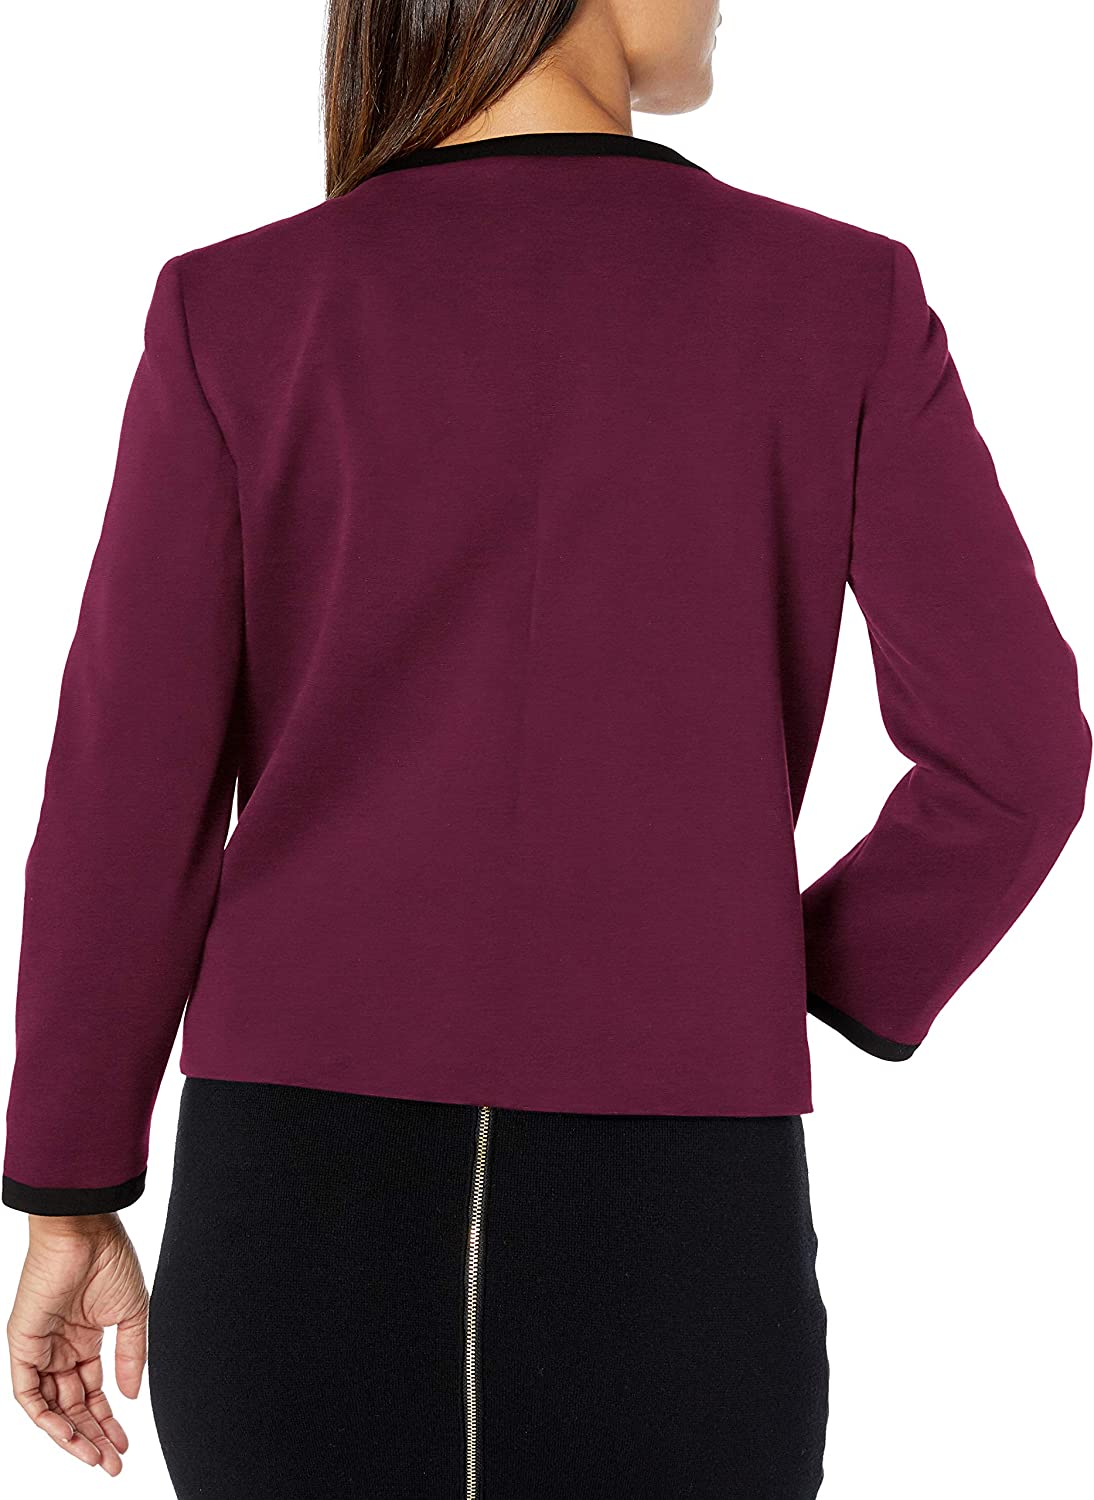 Nine West Womens Ponte Jewel Neck Jacket with Trimming Detail